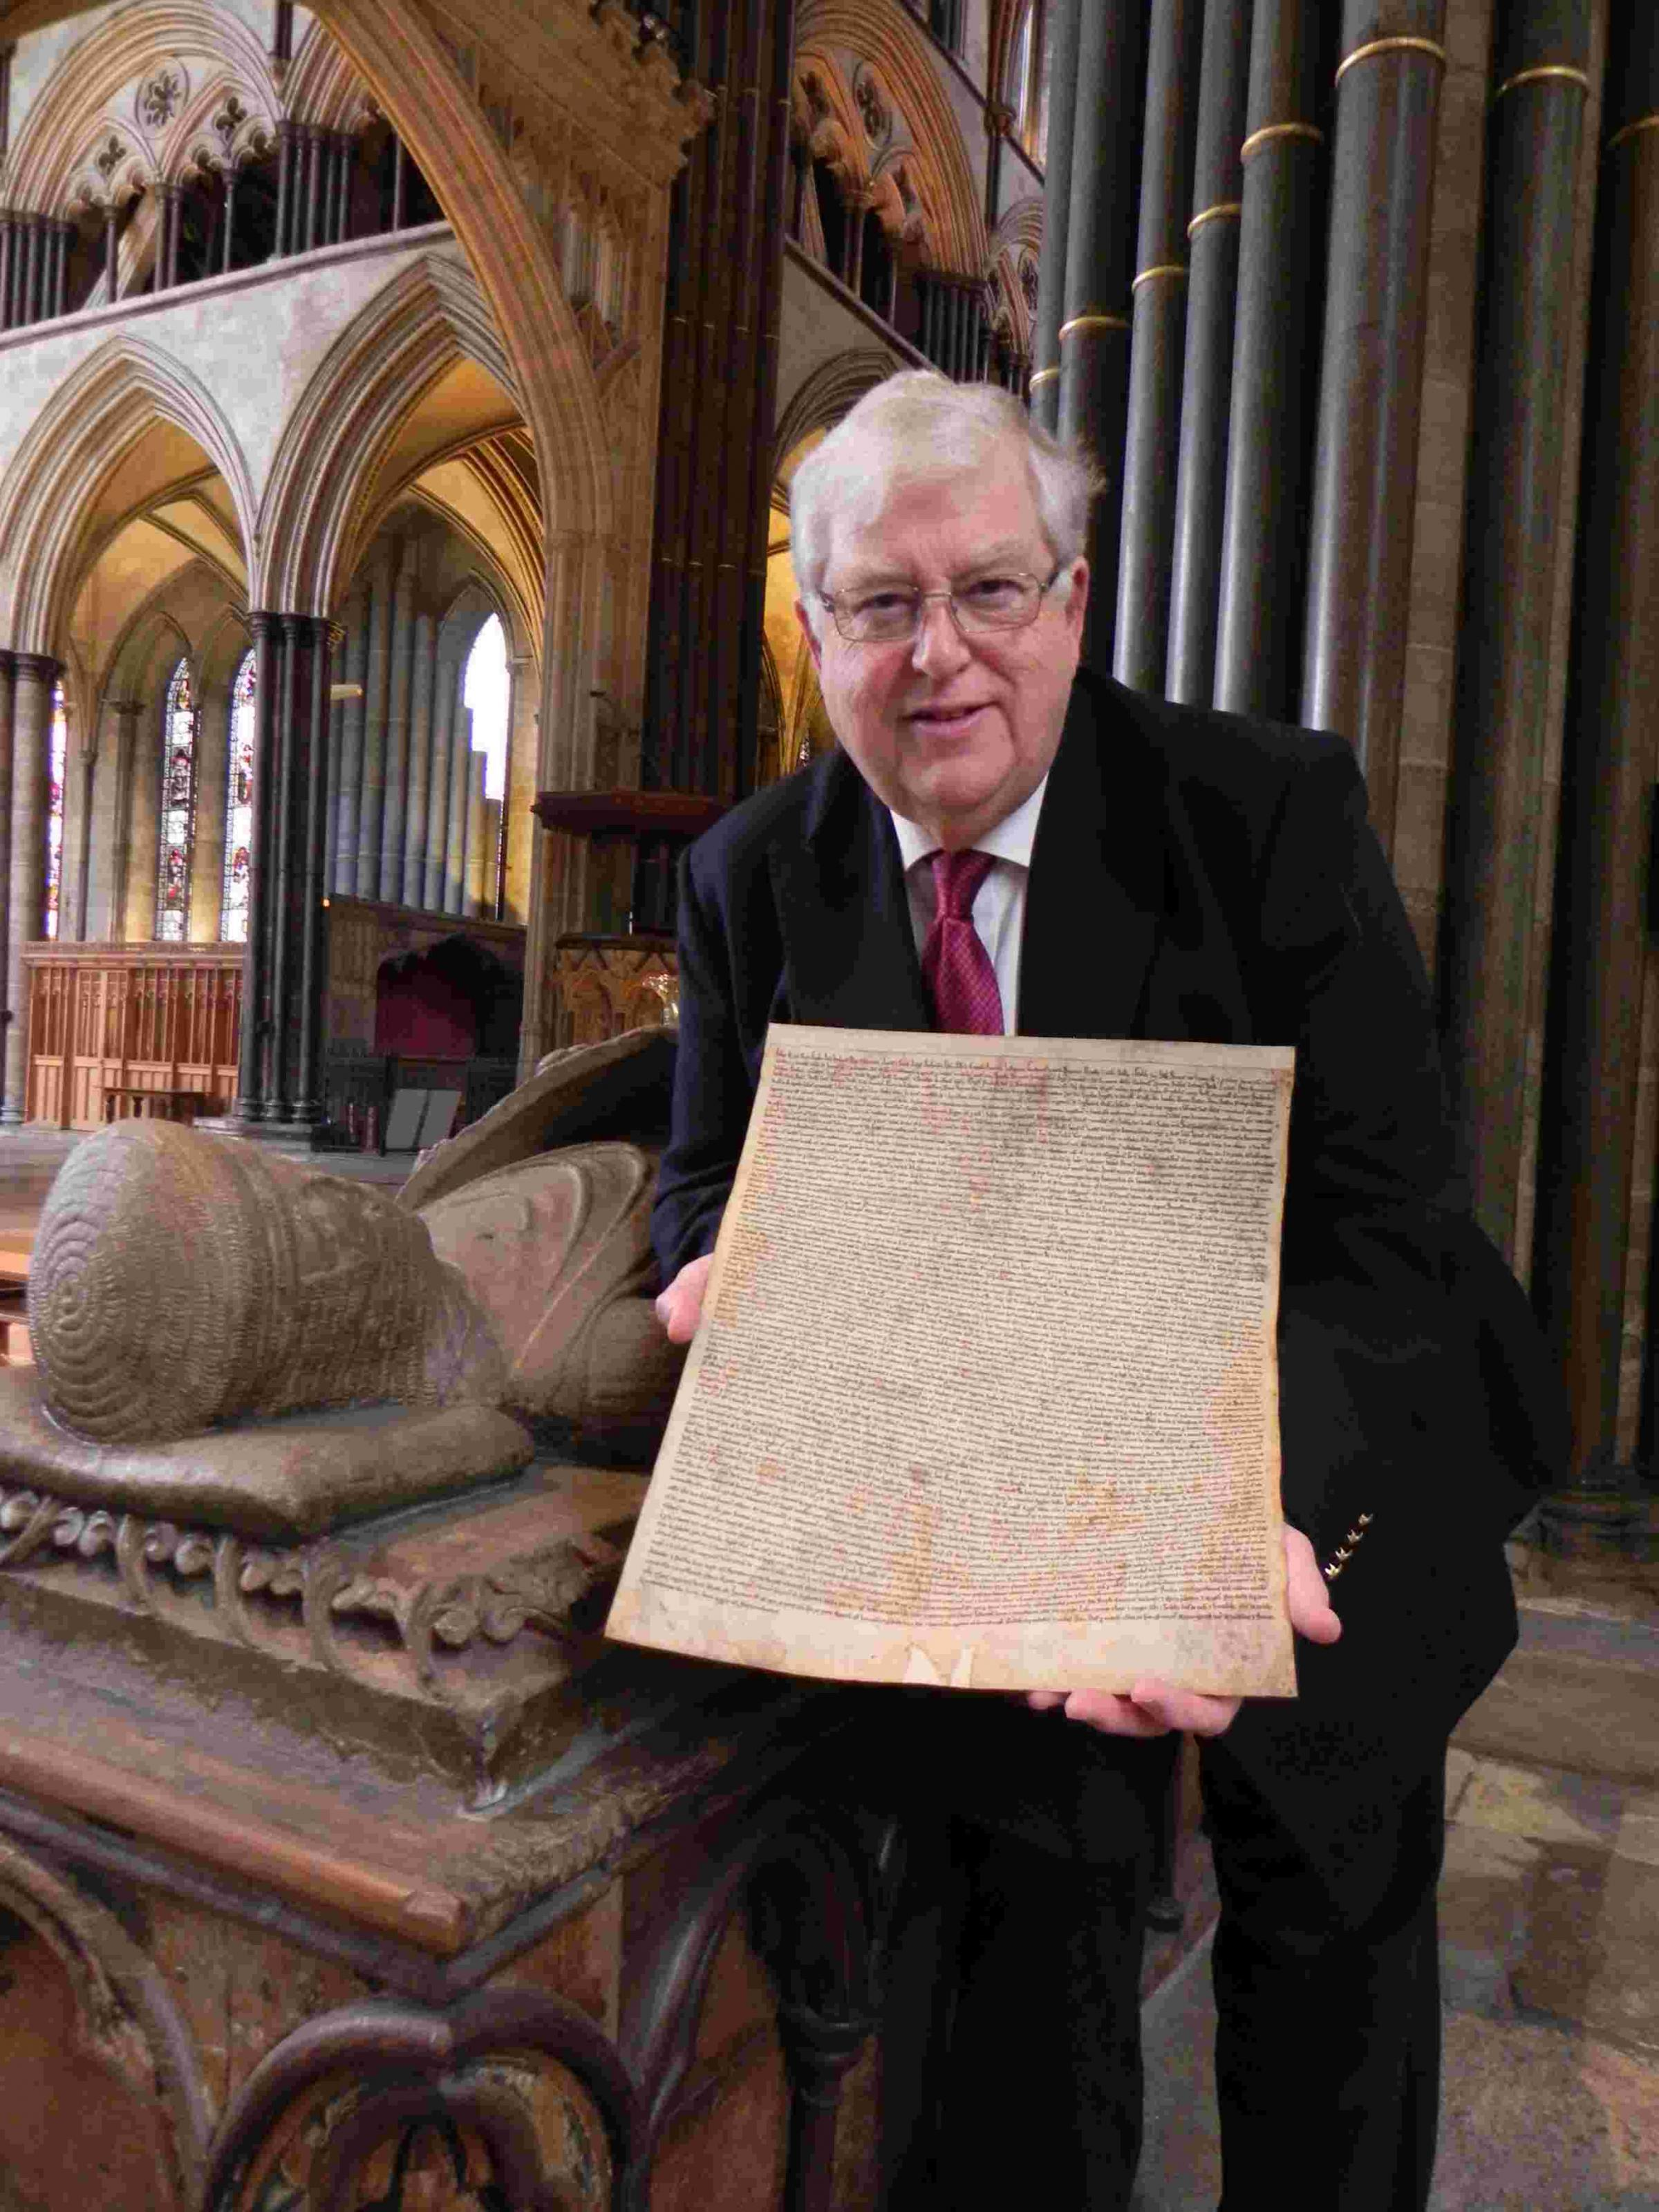 Robert Key at Salisbury Cathedral with the Magna Carta facsimile at the tomb of William Longspee, half brother of King John, who was at Runnymede on June 15, 1215